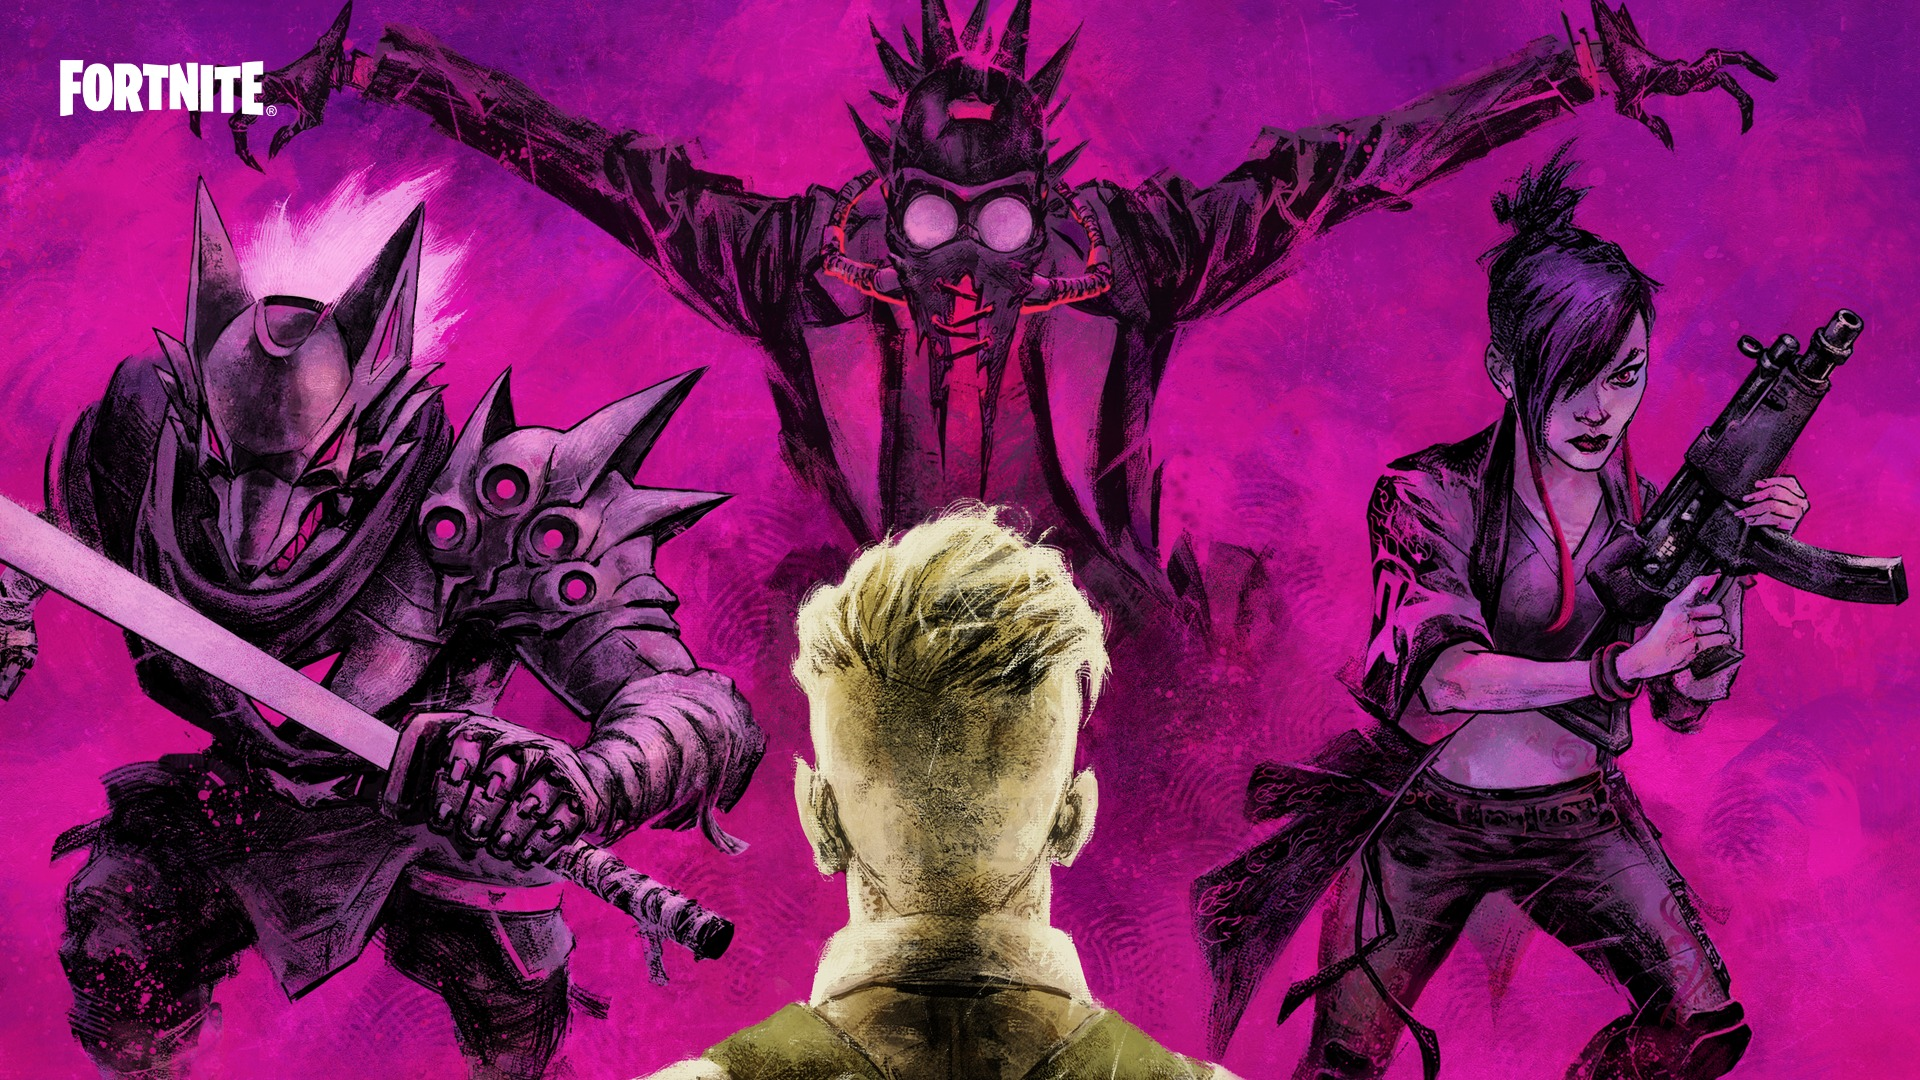 The back of Midas' head looking at three looming figures: a knight in wolf-like armor, a person in a gasmask with a trenchcoat and red tie, and a person wielding an SMG in cyberpunk-style clothing